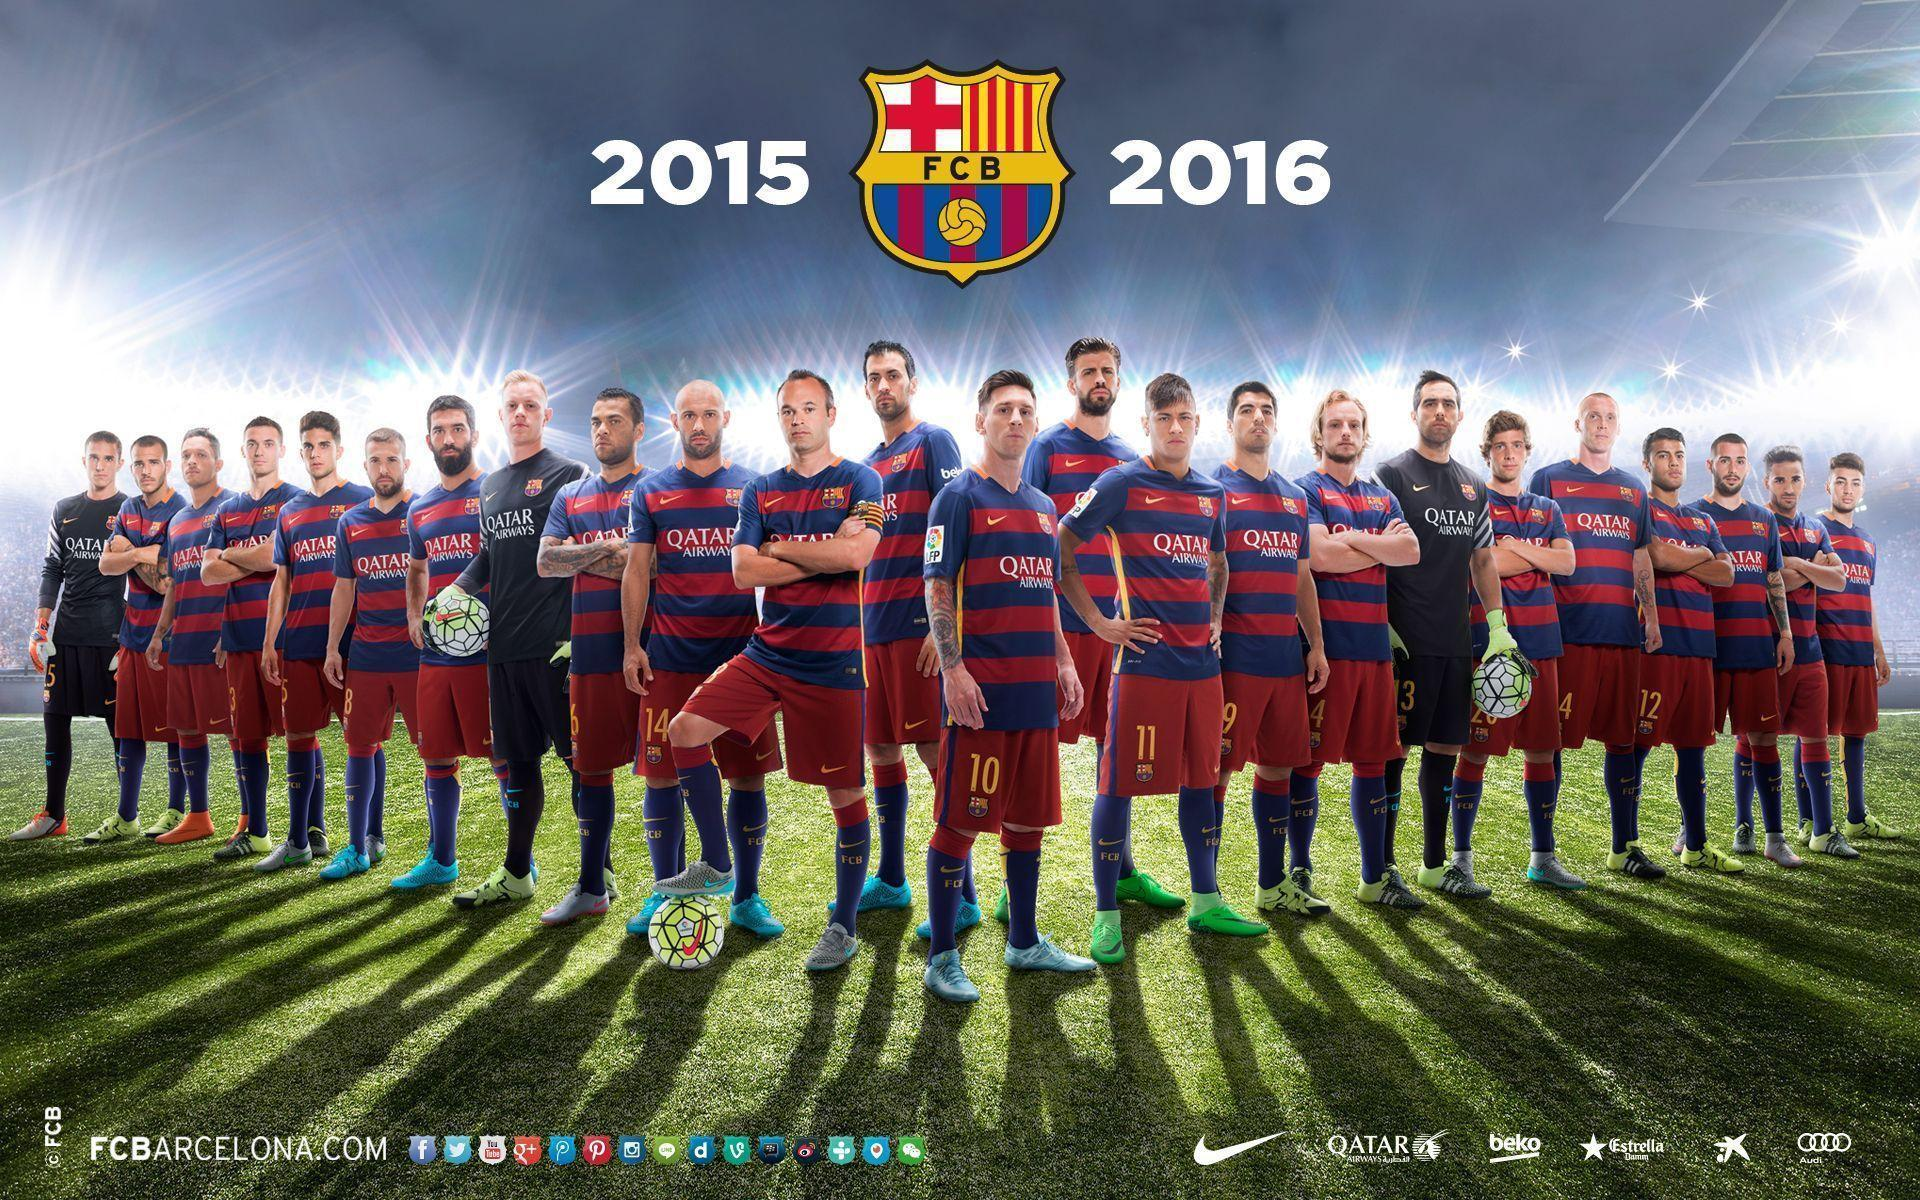 Free FC Barcelona Backgrounds | Wallpapers, Backgrounds, Images ...